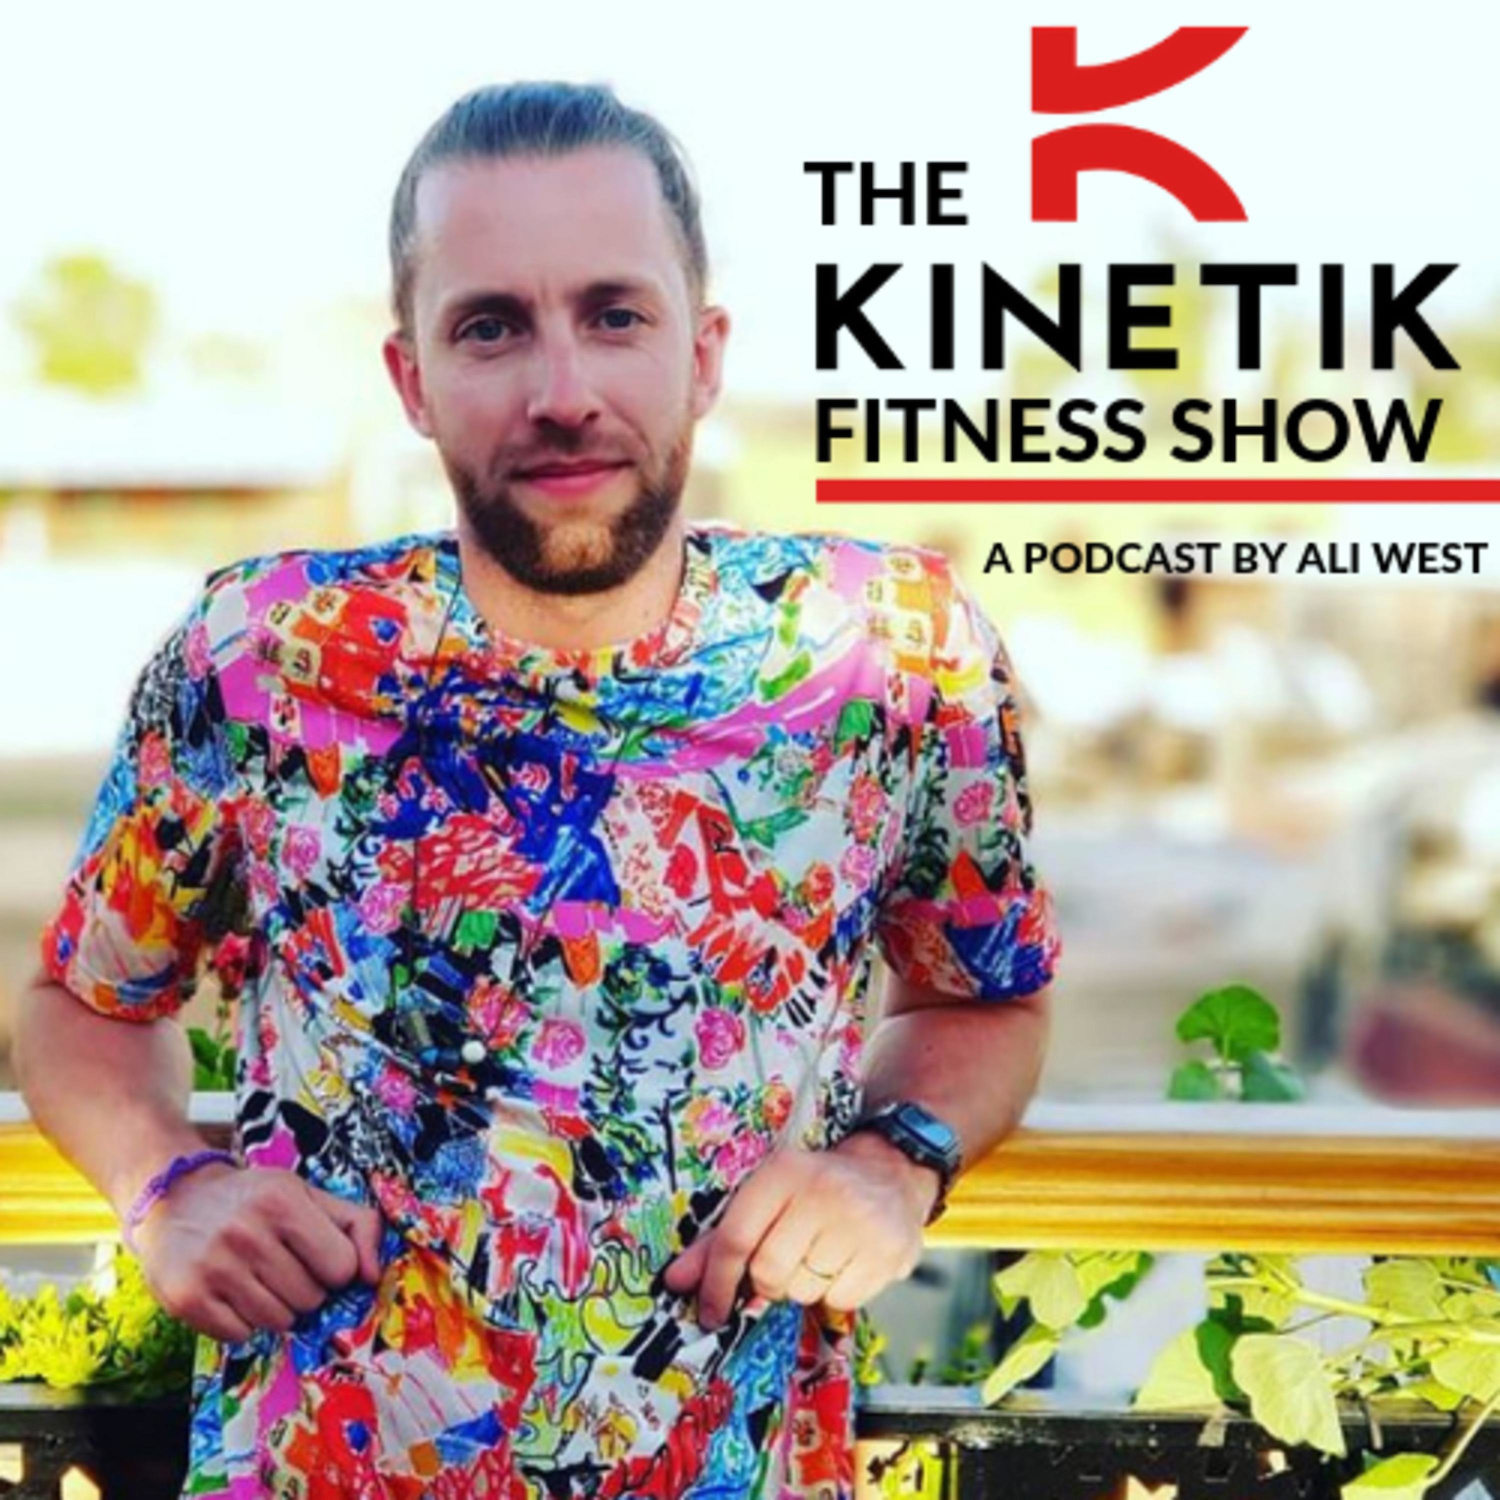 An interview with Ali West on The Kinetik Fitness Show